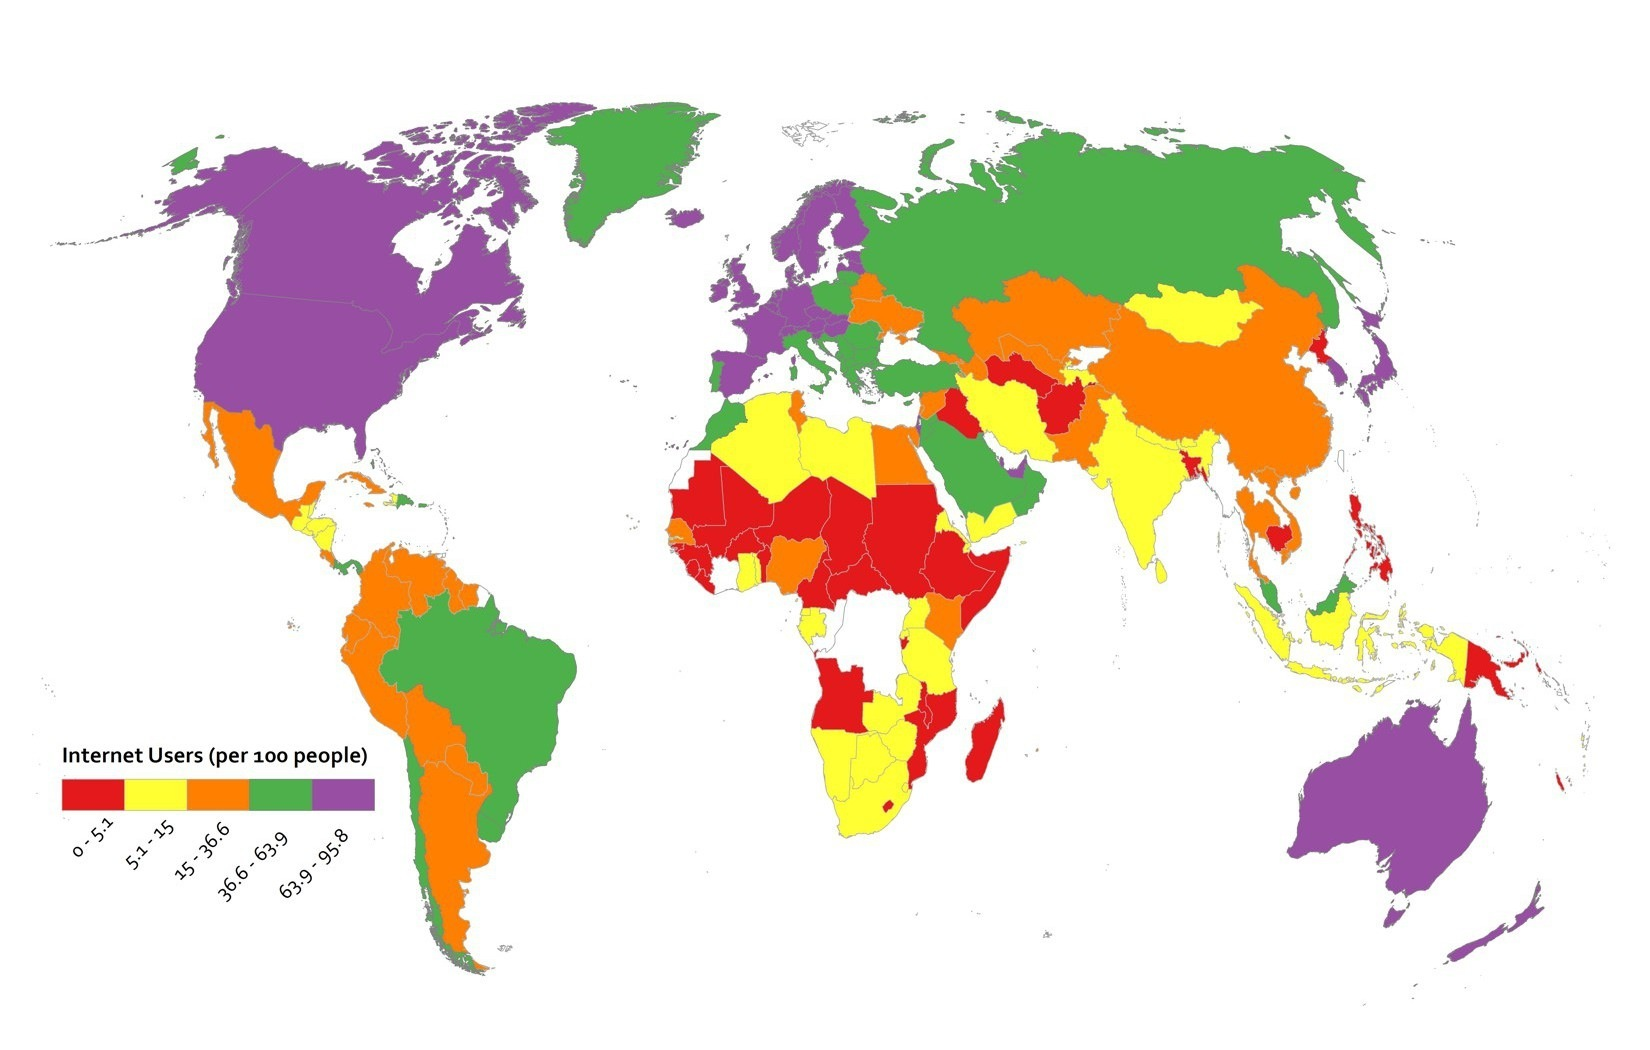 map using categoriacl color scheme: red, yellow, orange, green and purple